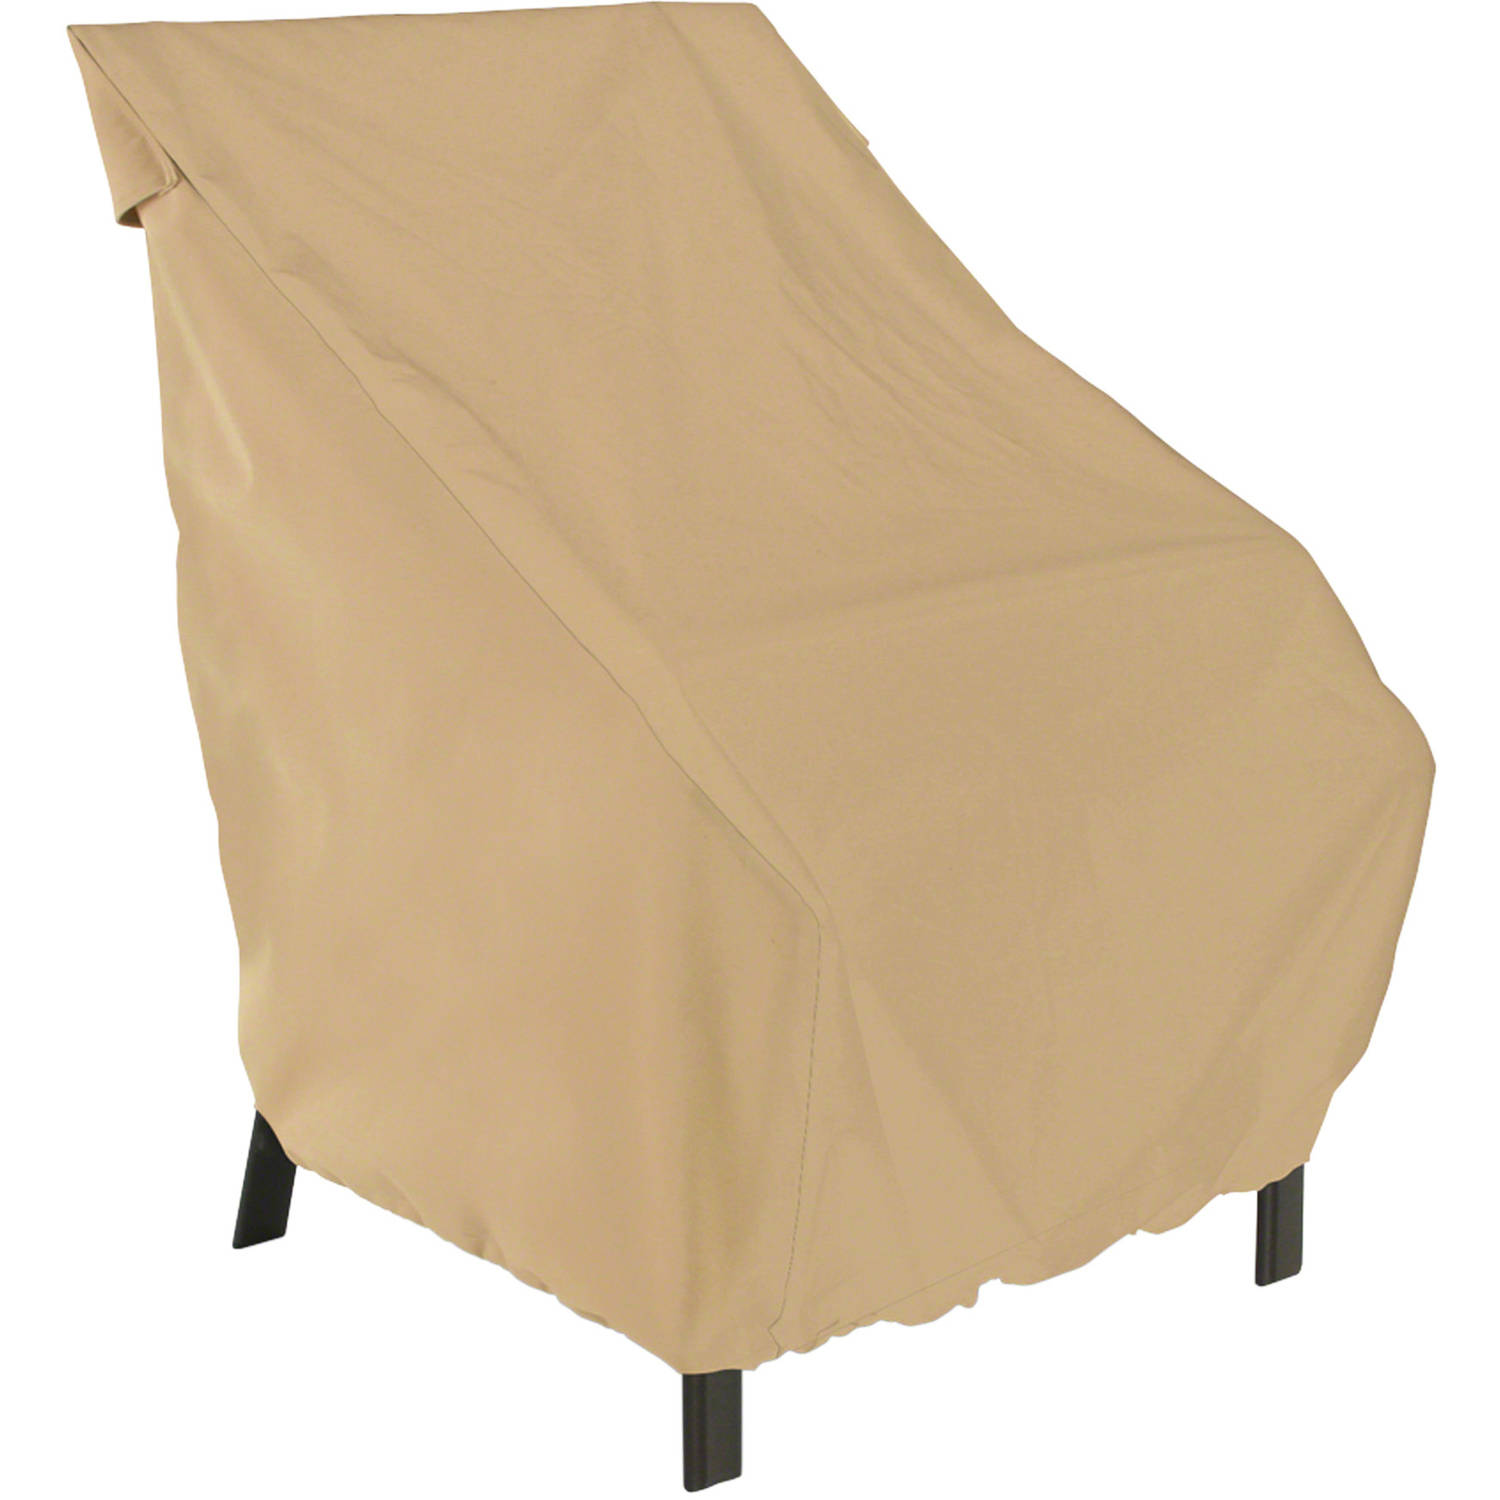 terrazzo standard patio chair cover all weather protection fits chairs 28 5 l x 25 5 d walmart com